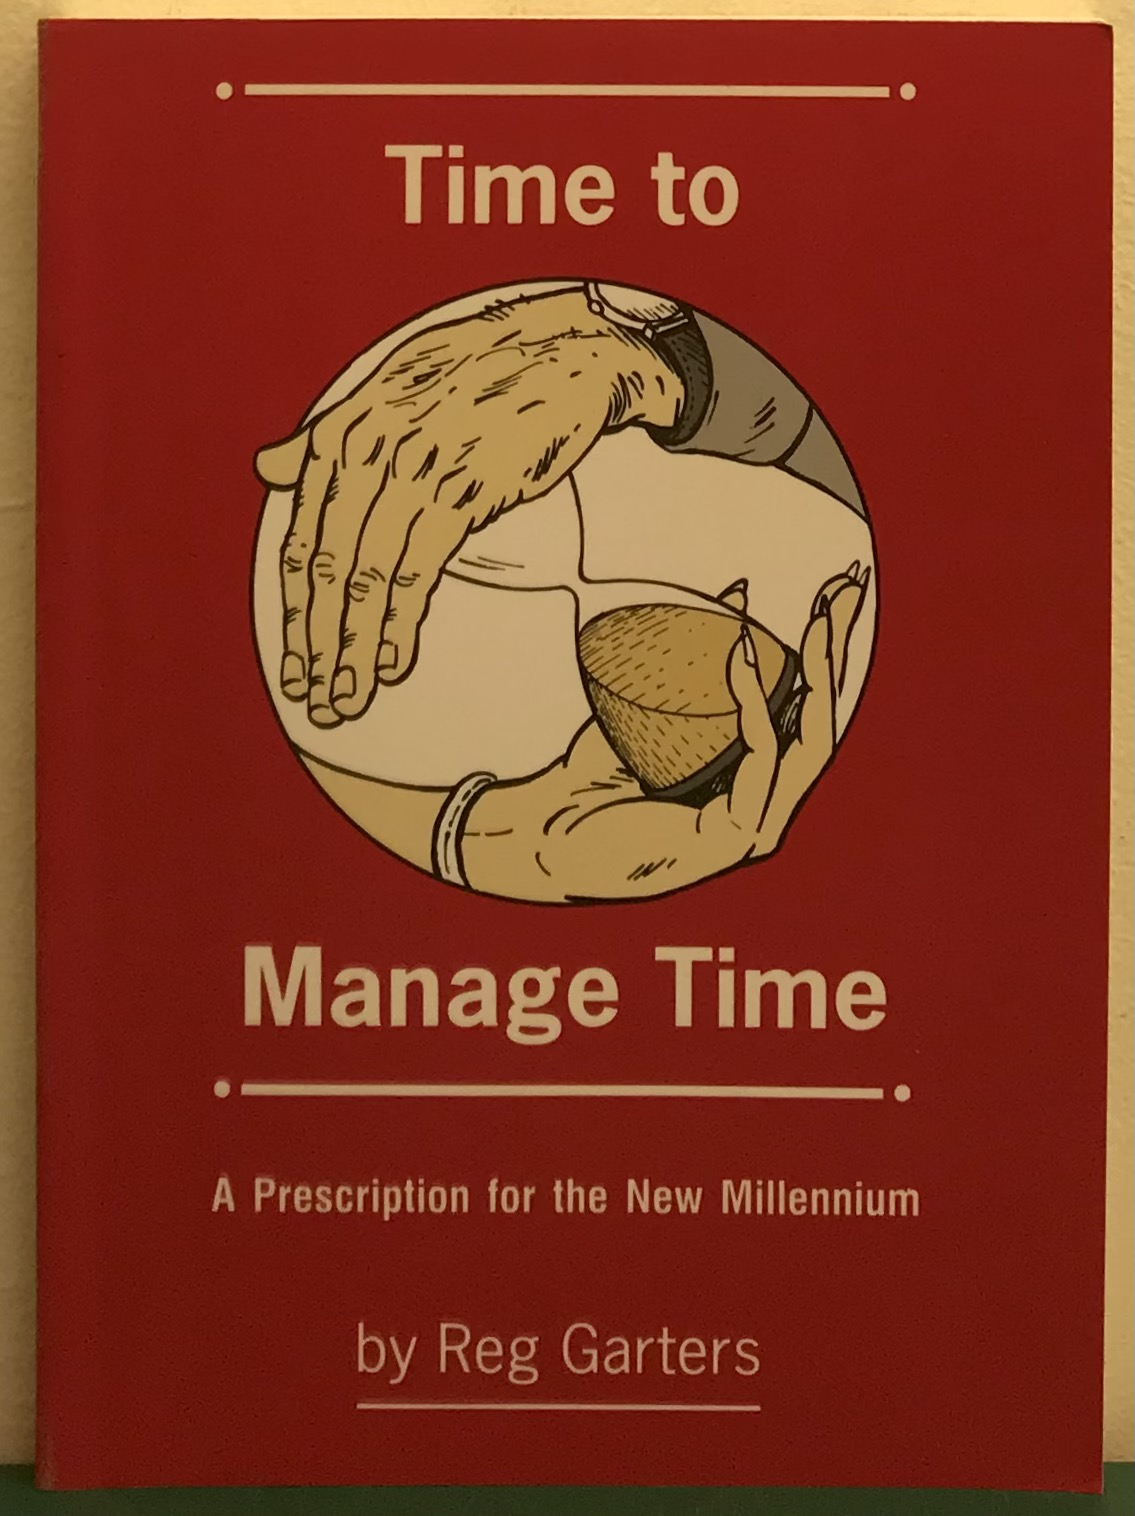 Time to Manage Time - A presciption for the New Millenium